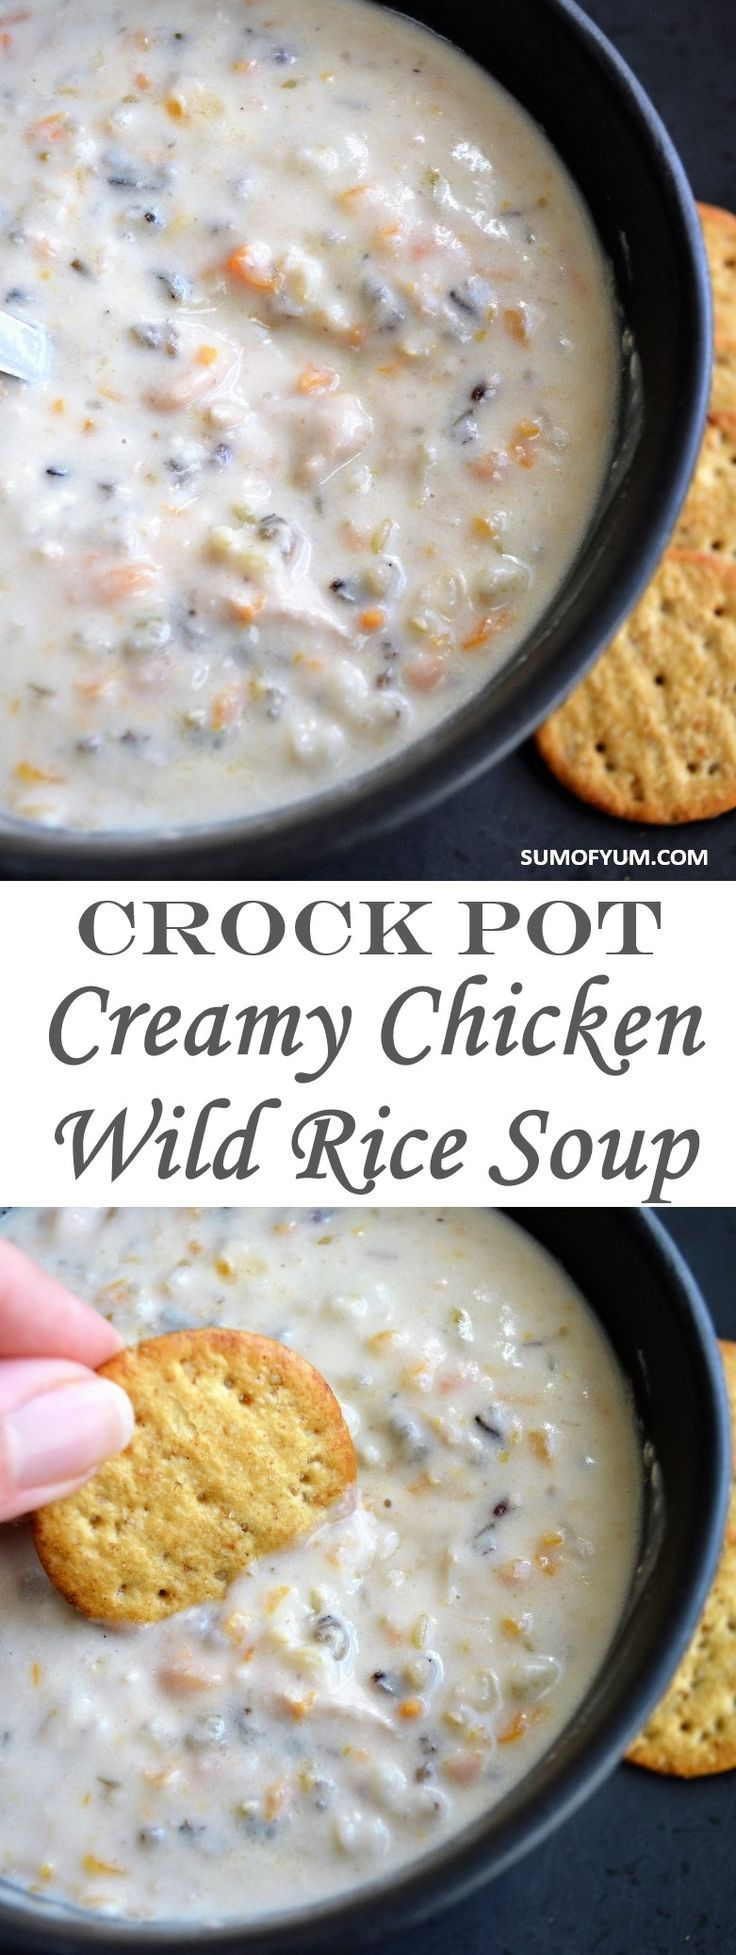 Creamy Chicken Wild Rice Soup that is made in a Crock Pot or slow cooker is just what you need on a cold winter day.